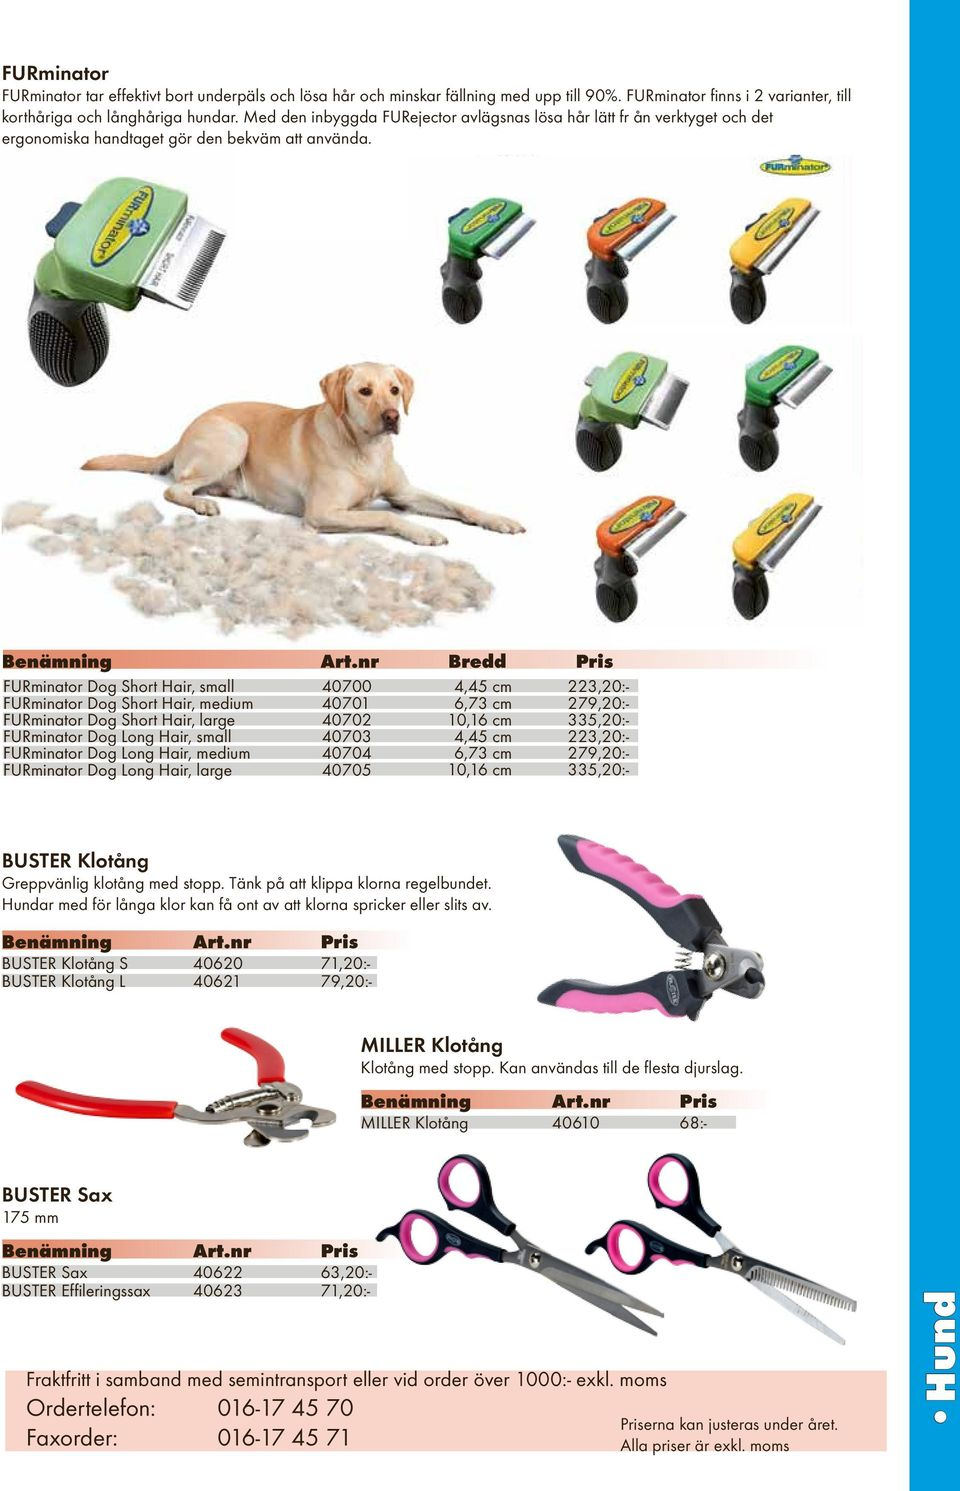 nr Bredd Pris FURminator Dog Short Hair, small 40700 4,45 cm 223,20:- FURminator Dog Short Hair, medium 40701 6,73 cm 279,20:- FURminator Dog Short Hair, large 40702 10,16 cm 335,20:- FURminator Dog